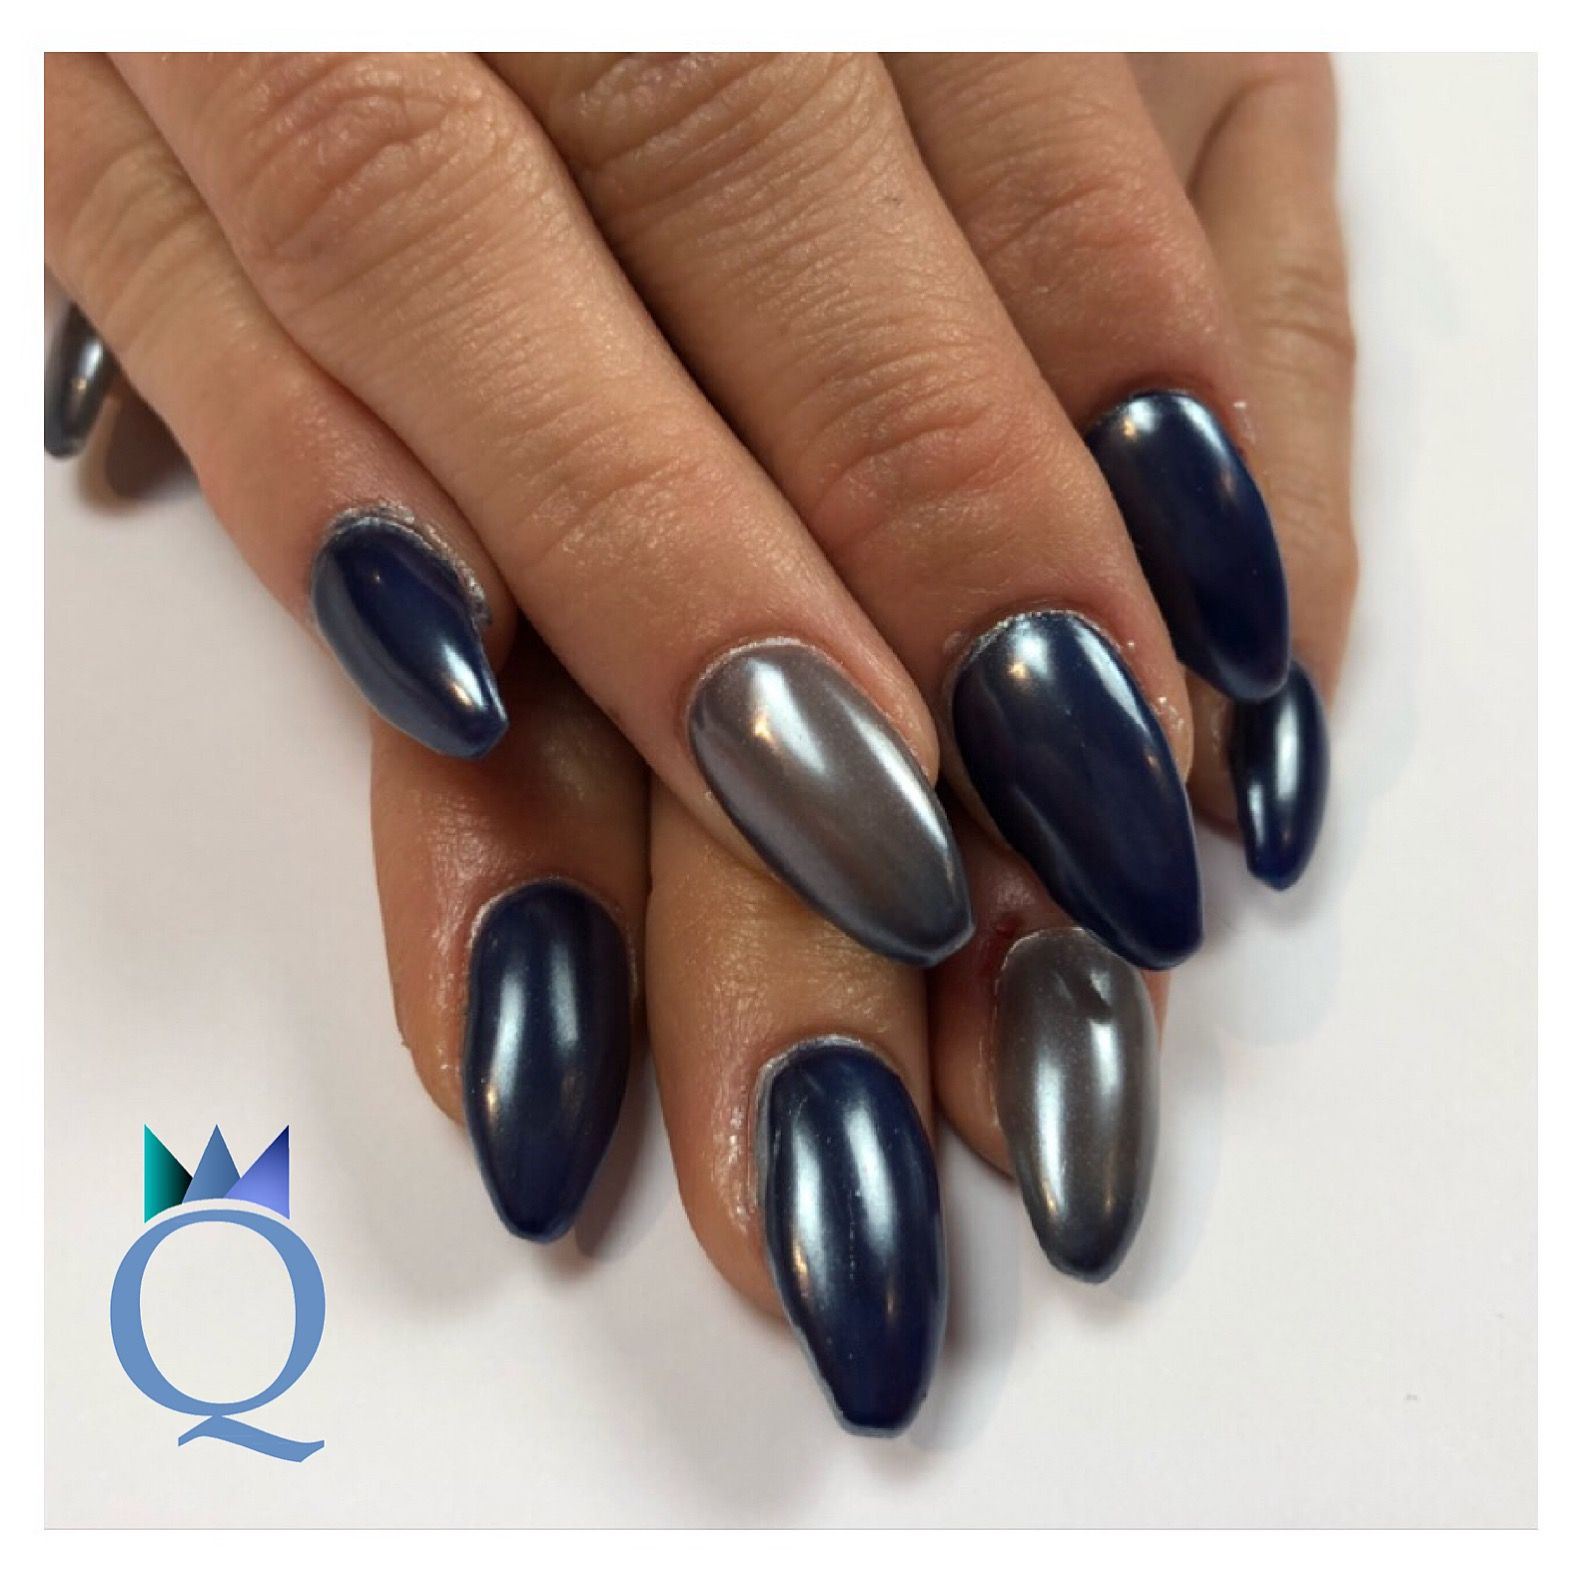 coffinnails #gelnails #nails #blue #grey #chrome #ballerinaform ...